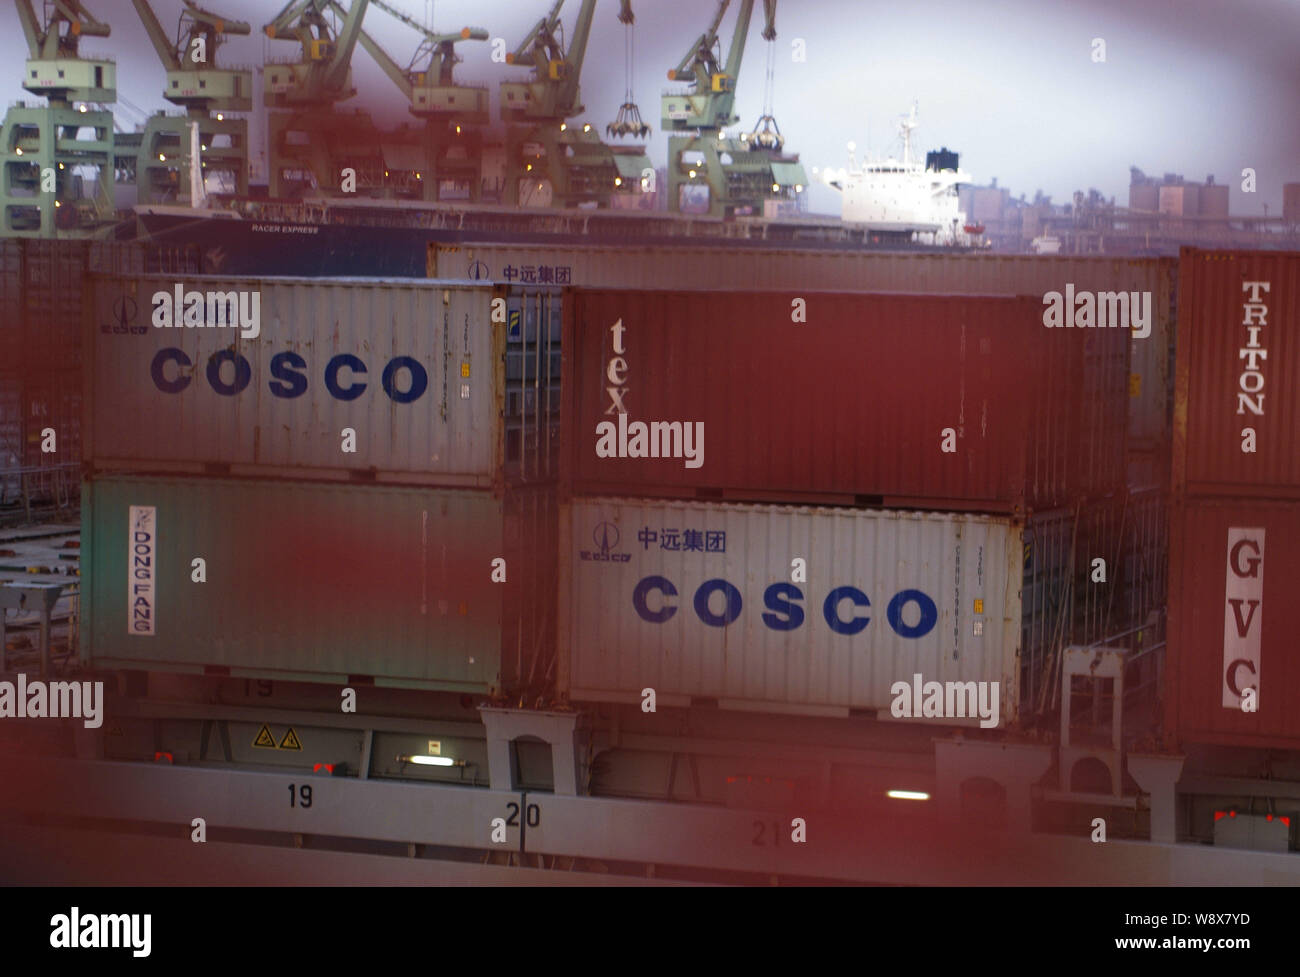 FILE--Containers of COSCO (China Ocean Shipping (Group